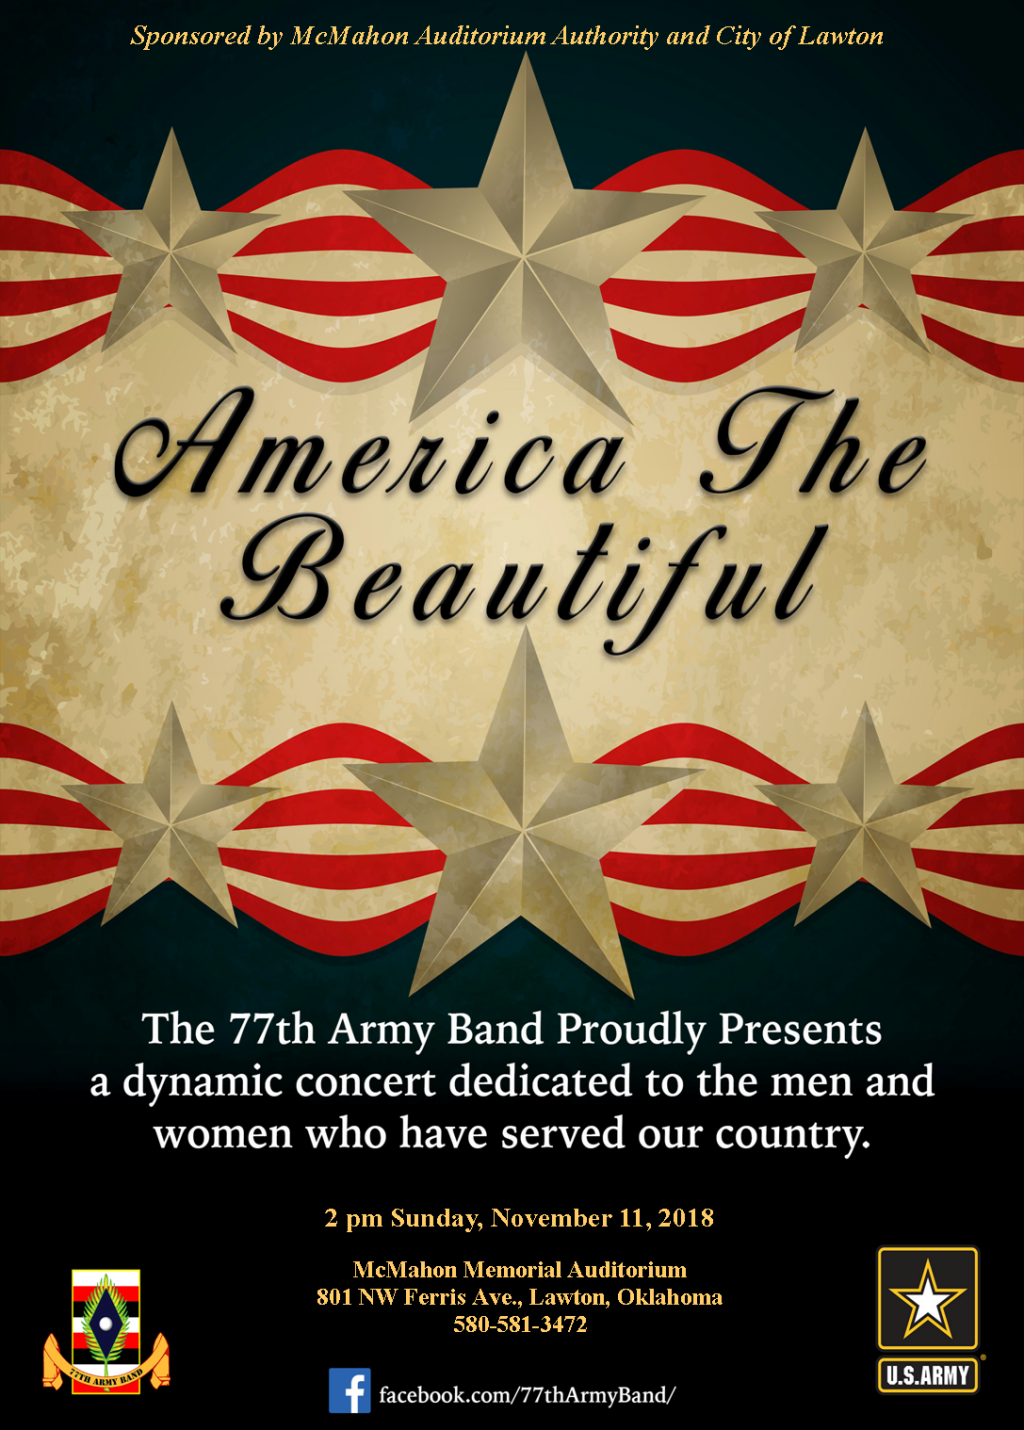 77th Army Band